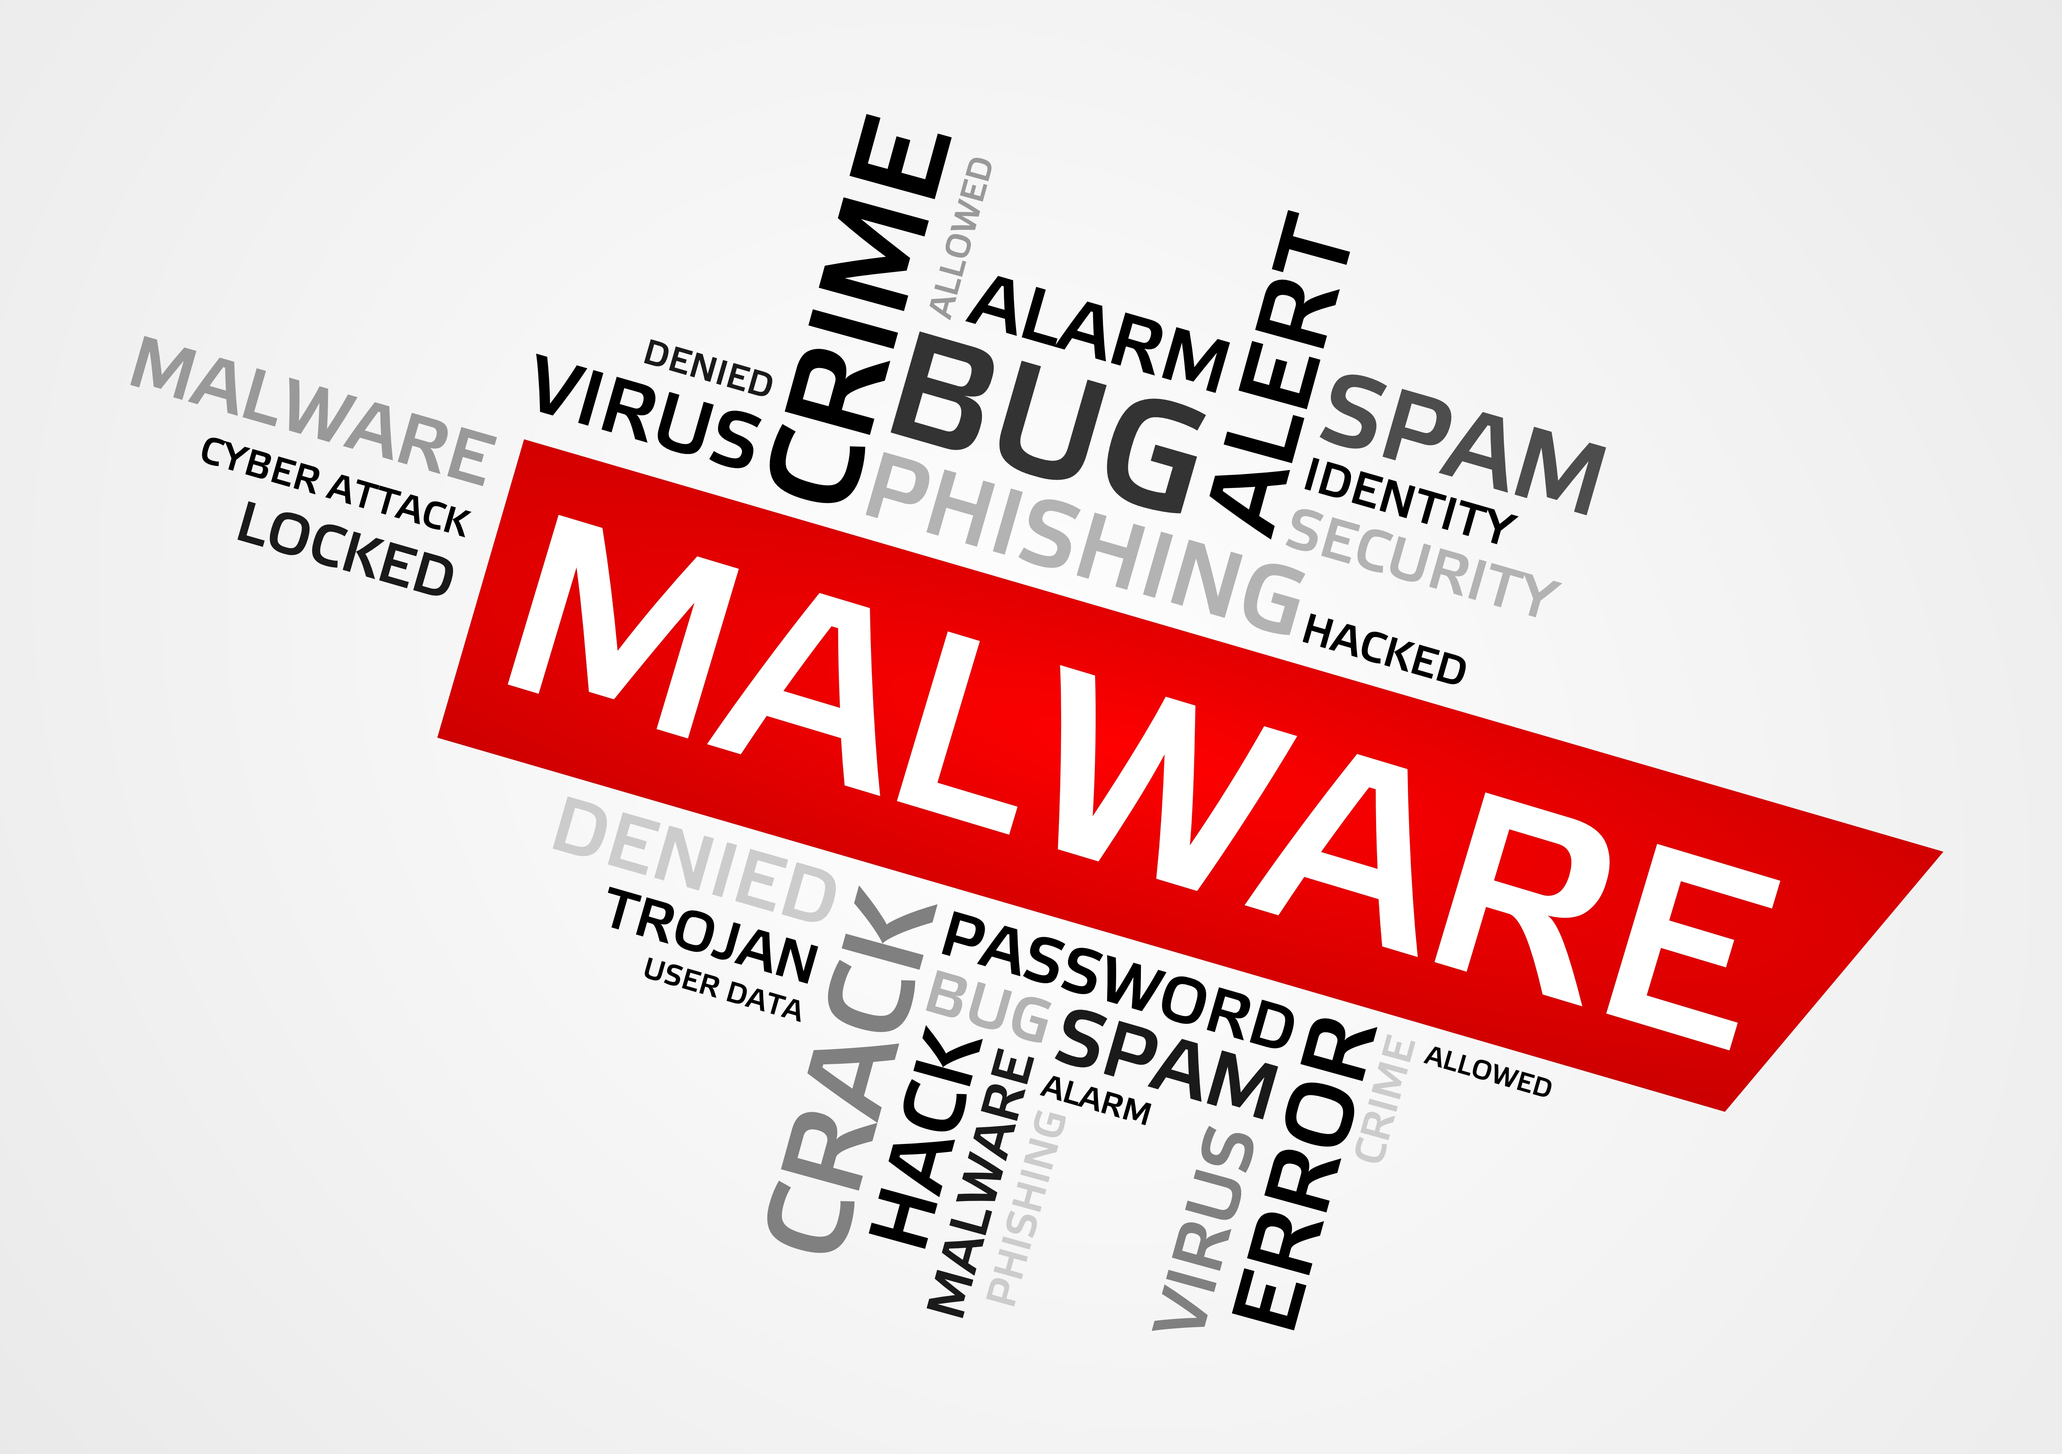 Researchers Report on Top 4 Catastrophic Malware Infections